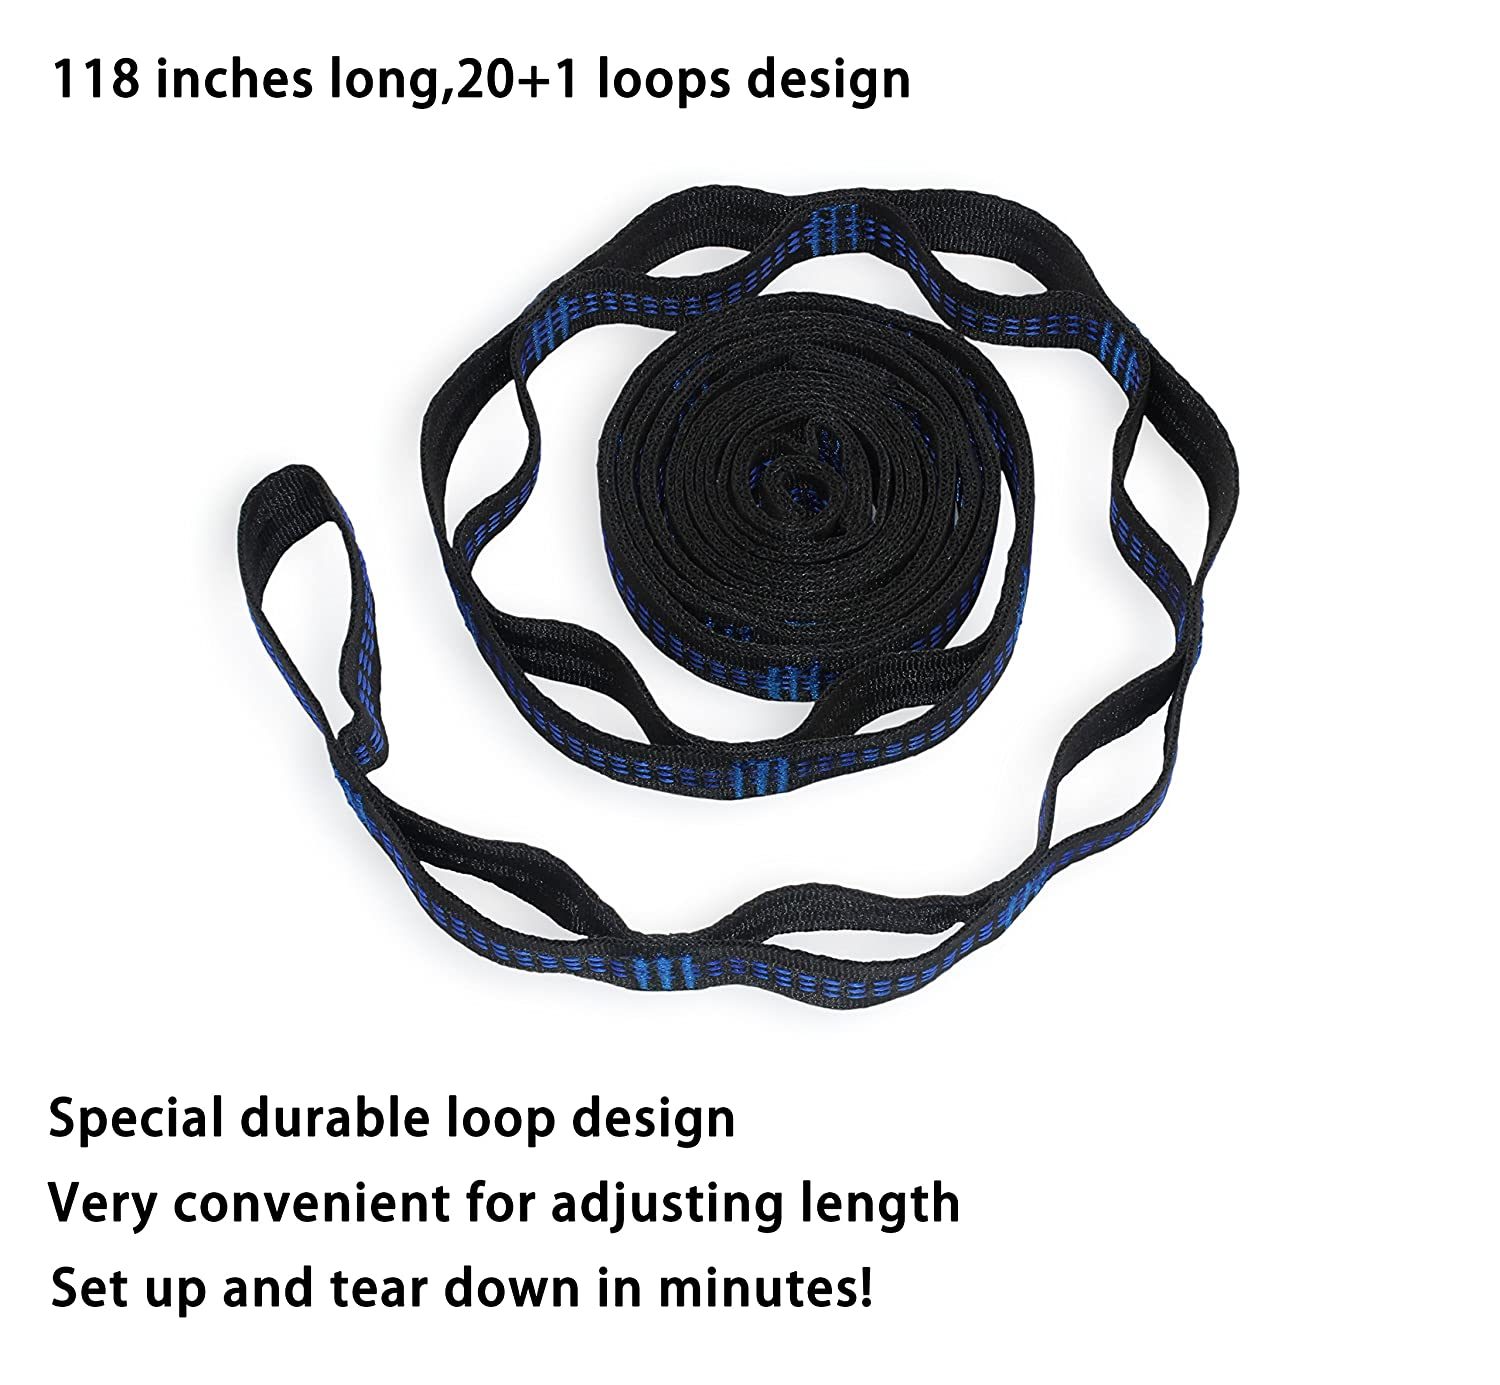 Hammock Straps with 2 Carabiners No Stretch Polyeste 20 ft Long /& 42 Adjustable Loops Lightweight /& Tree Friendly 2000 LBS Combined Breaking Strength Tested WoneNice Tree Straps for Hammock/&Swing